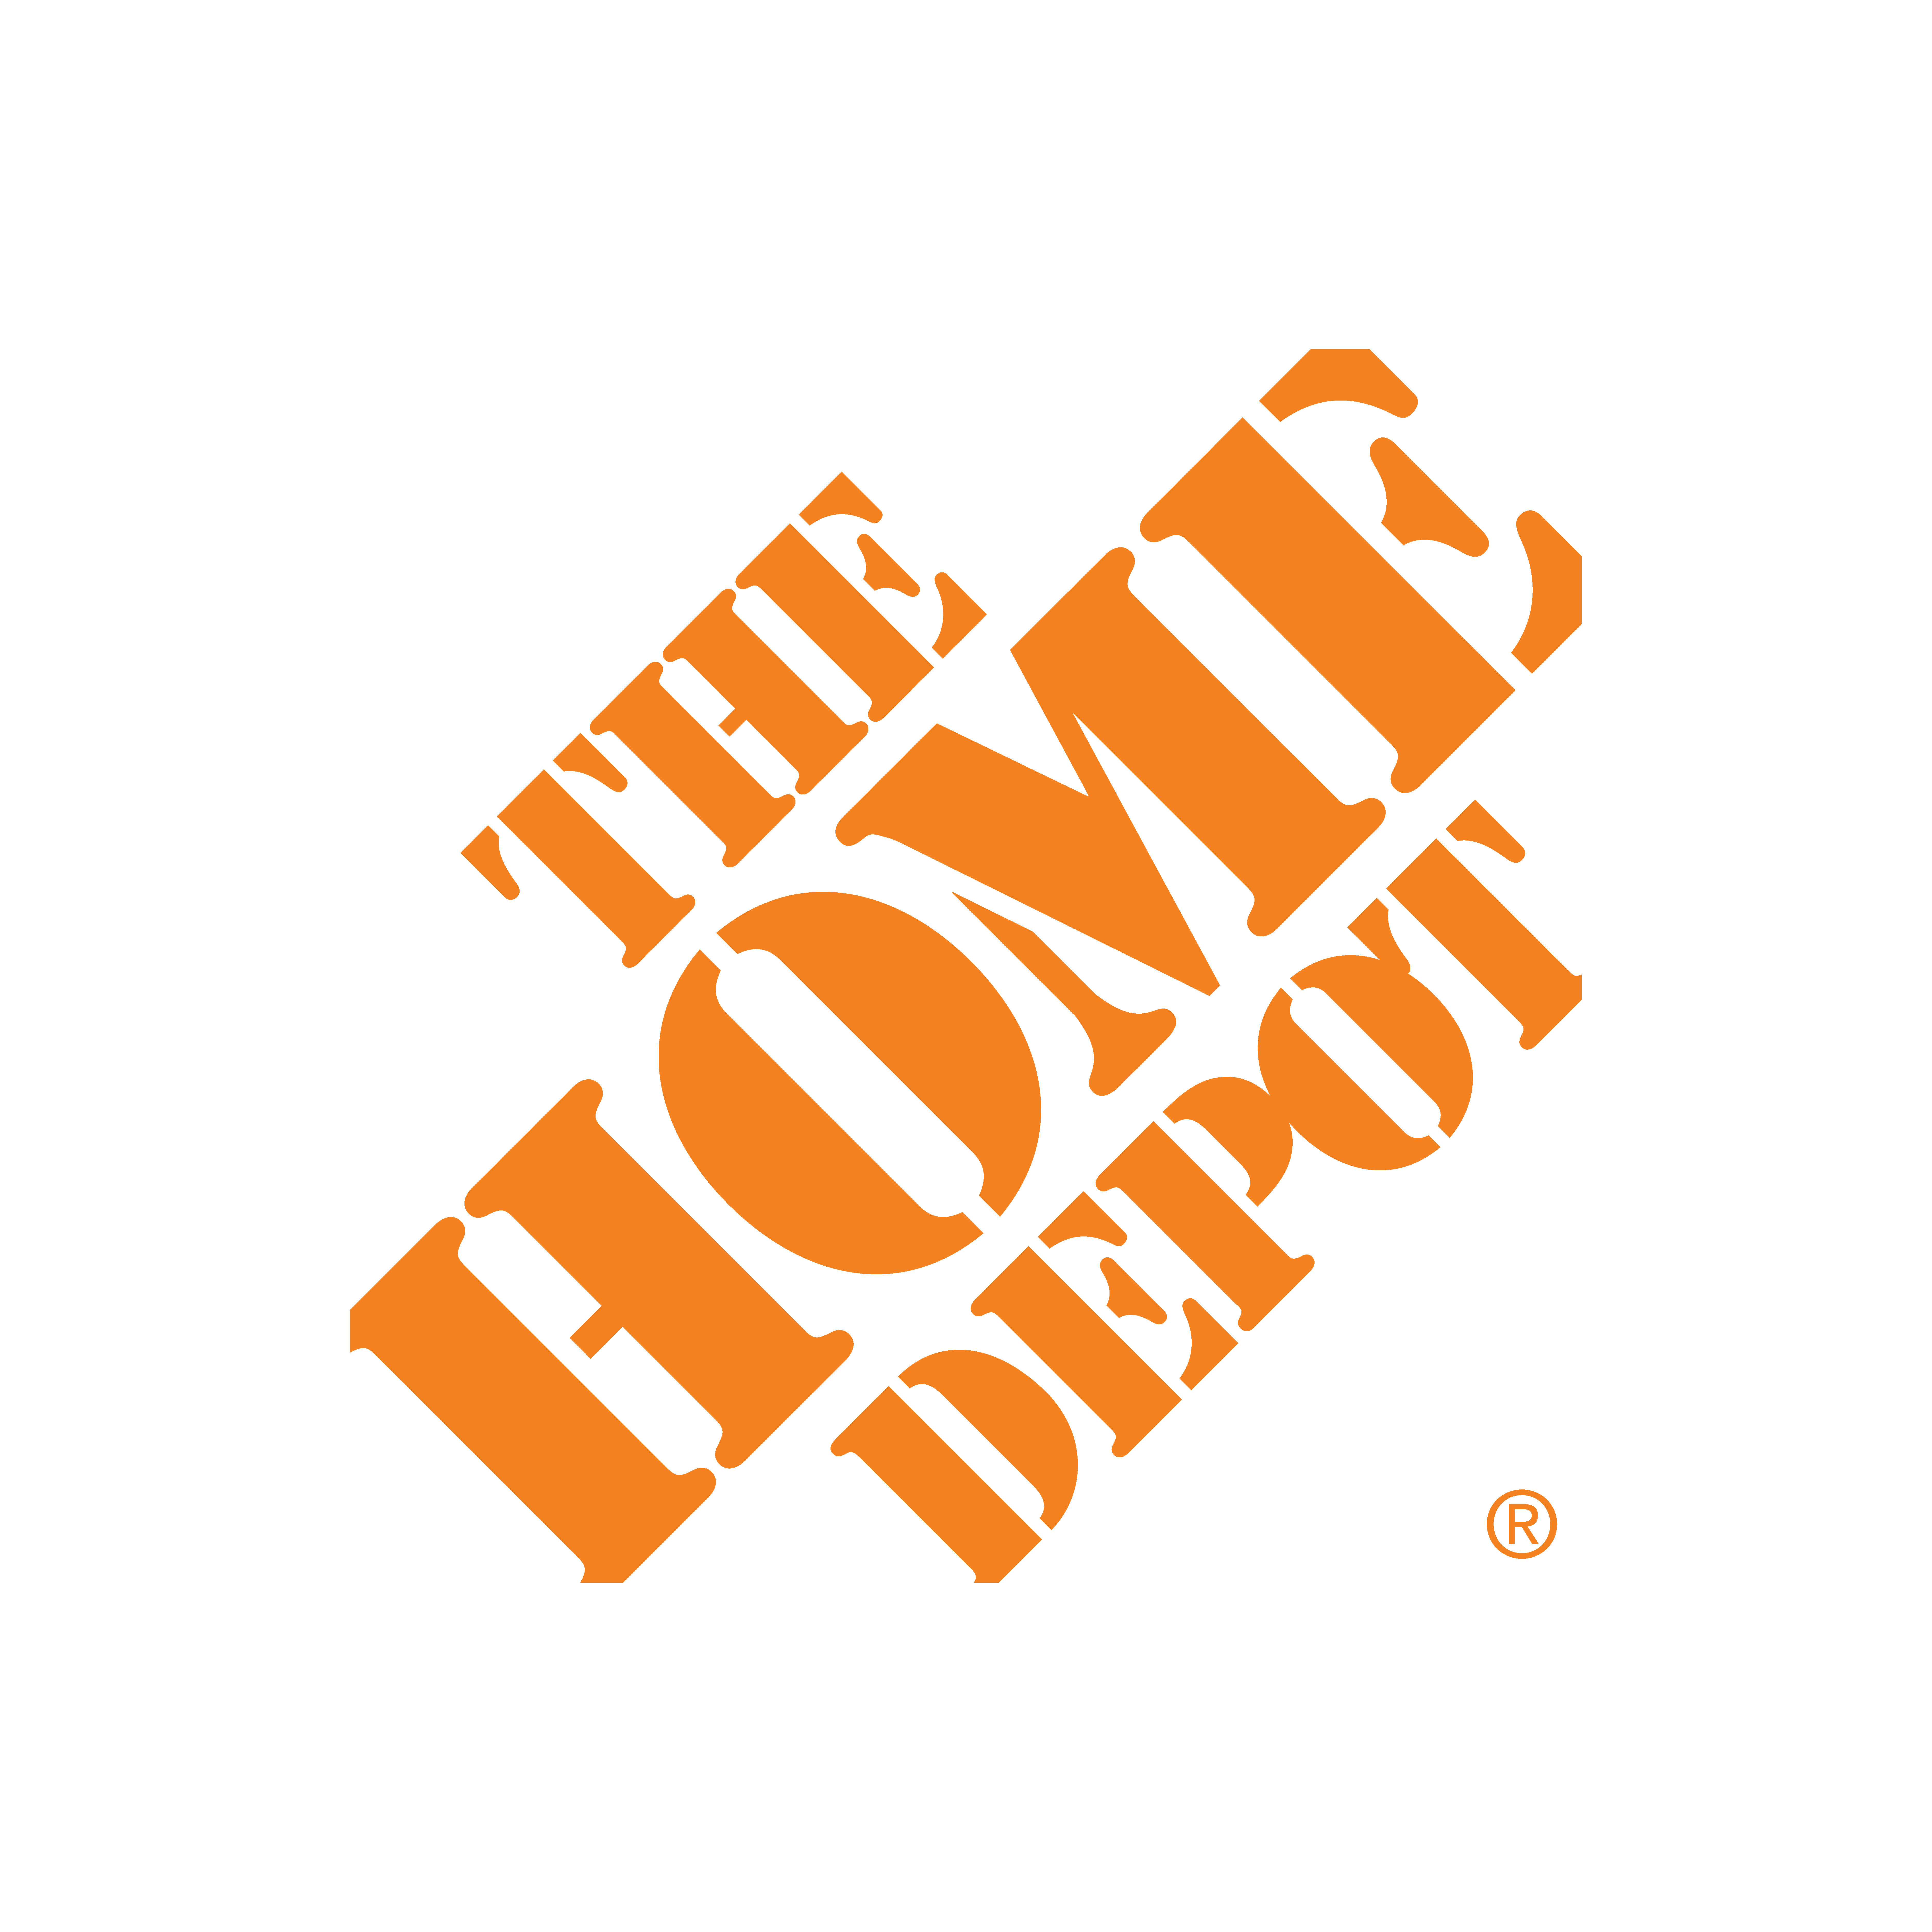 Home Depot Latest Deals - The Krazy Coupon Lady - Free Printable Home Depot Coupons